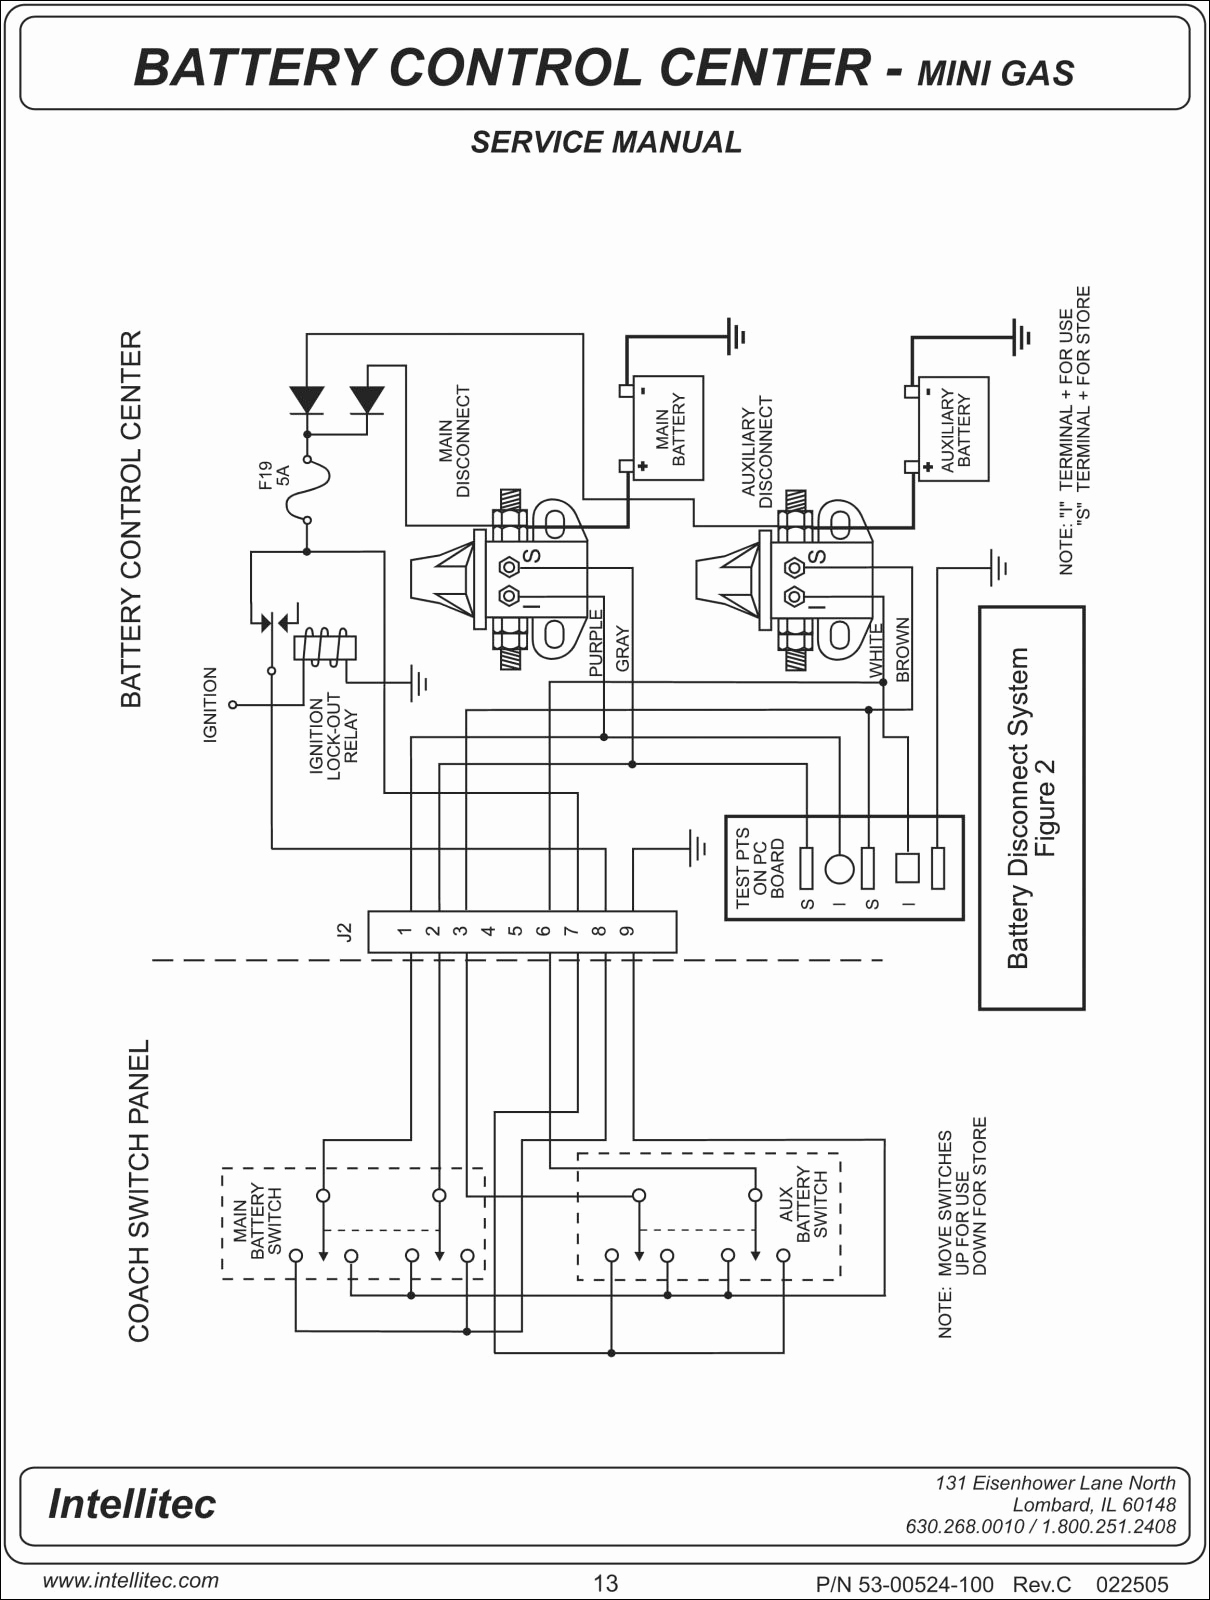 get generac 200 amp transfer switch wiring diagram sample generac 200 amp transfer switch wiring diagram generac 200 amp transfer switch wiring diagram luxury